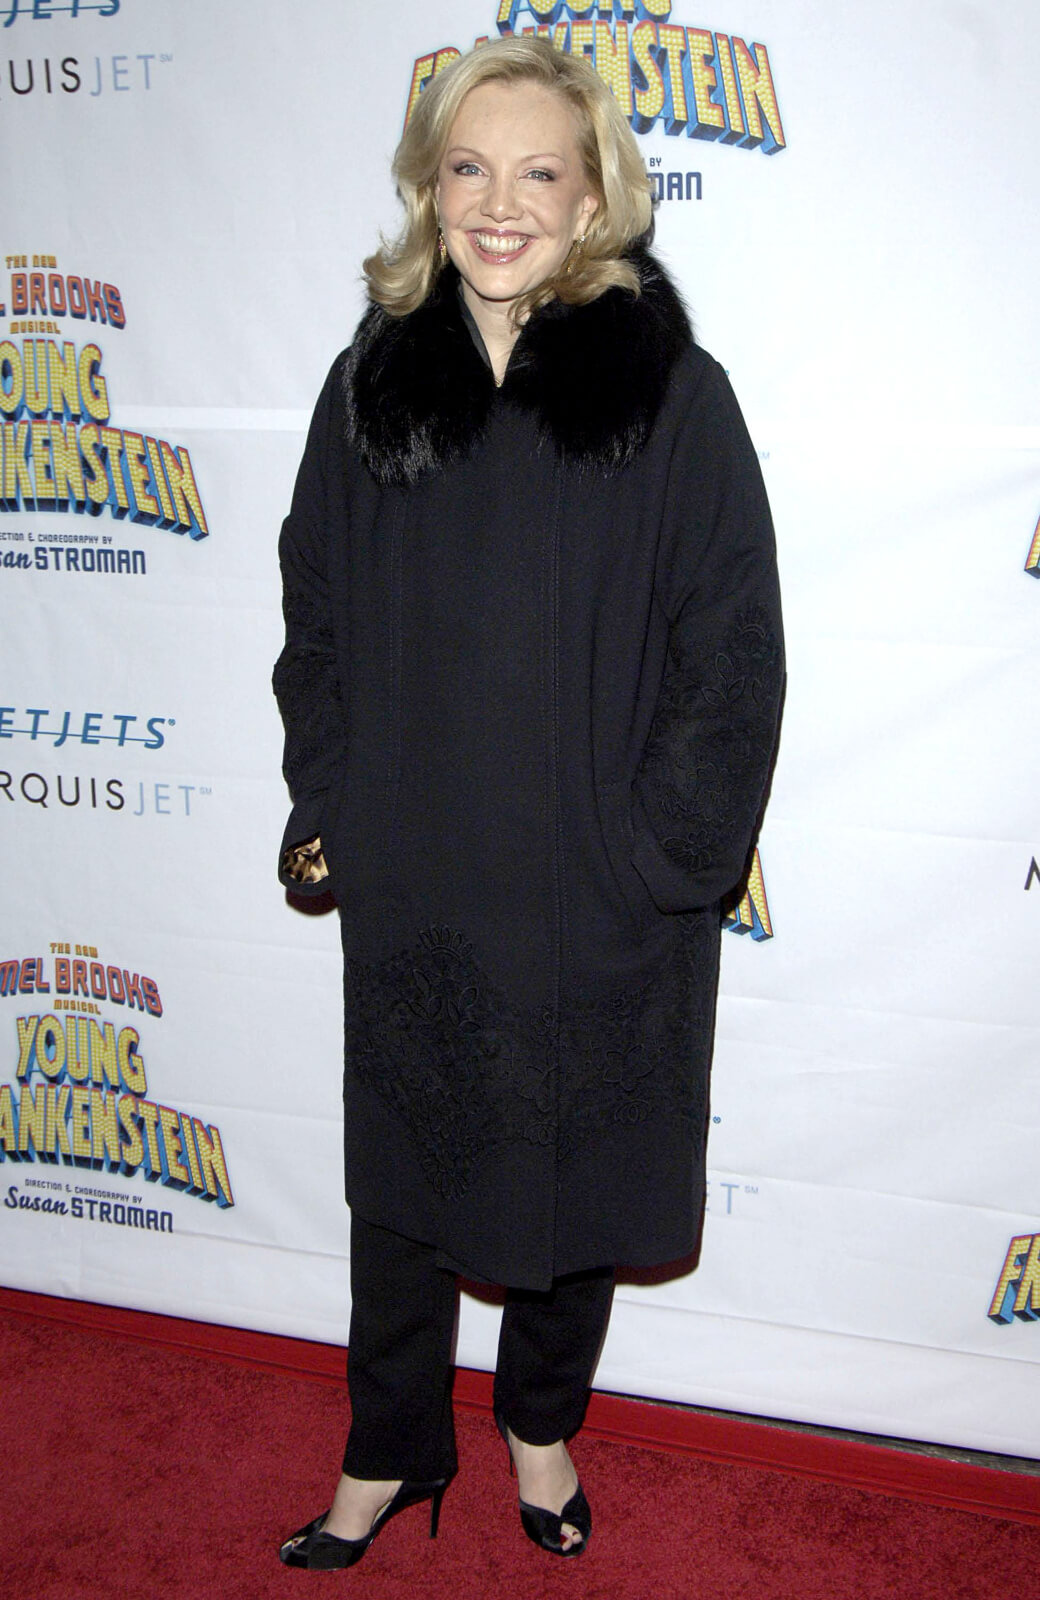 Susan Stroman on the red carpet at the opening night of Young Frankenstein, wearing black heels, pants, and jacket.